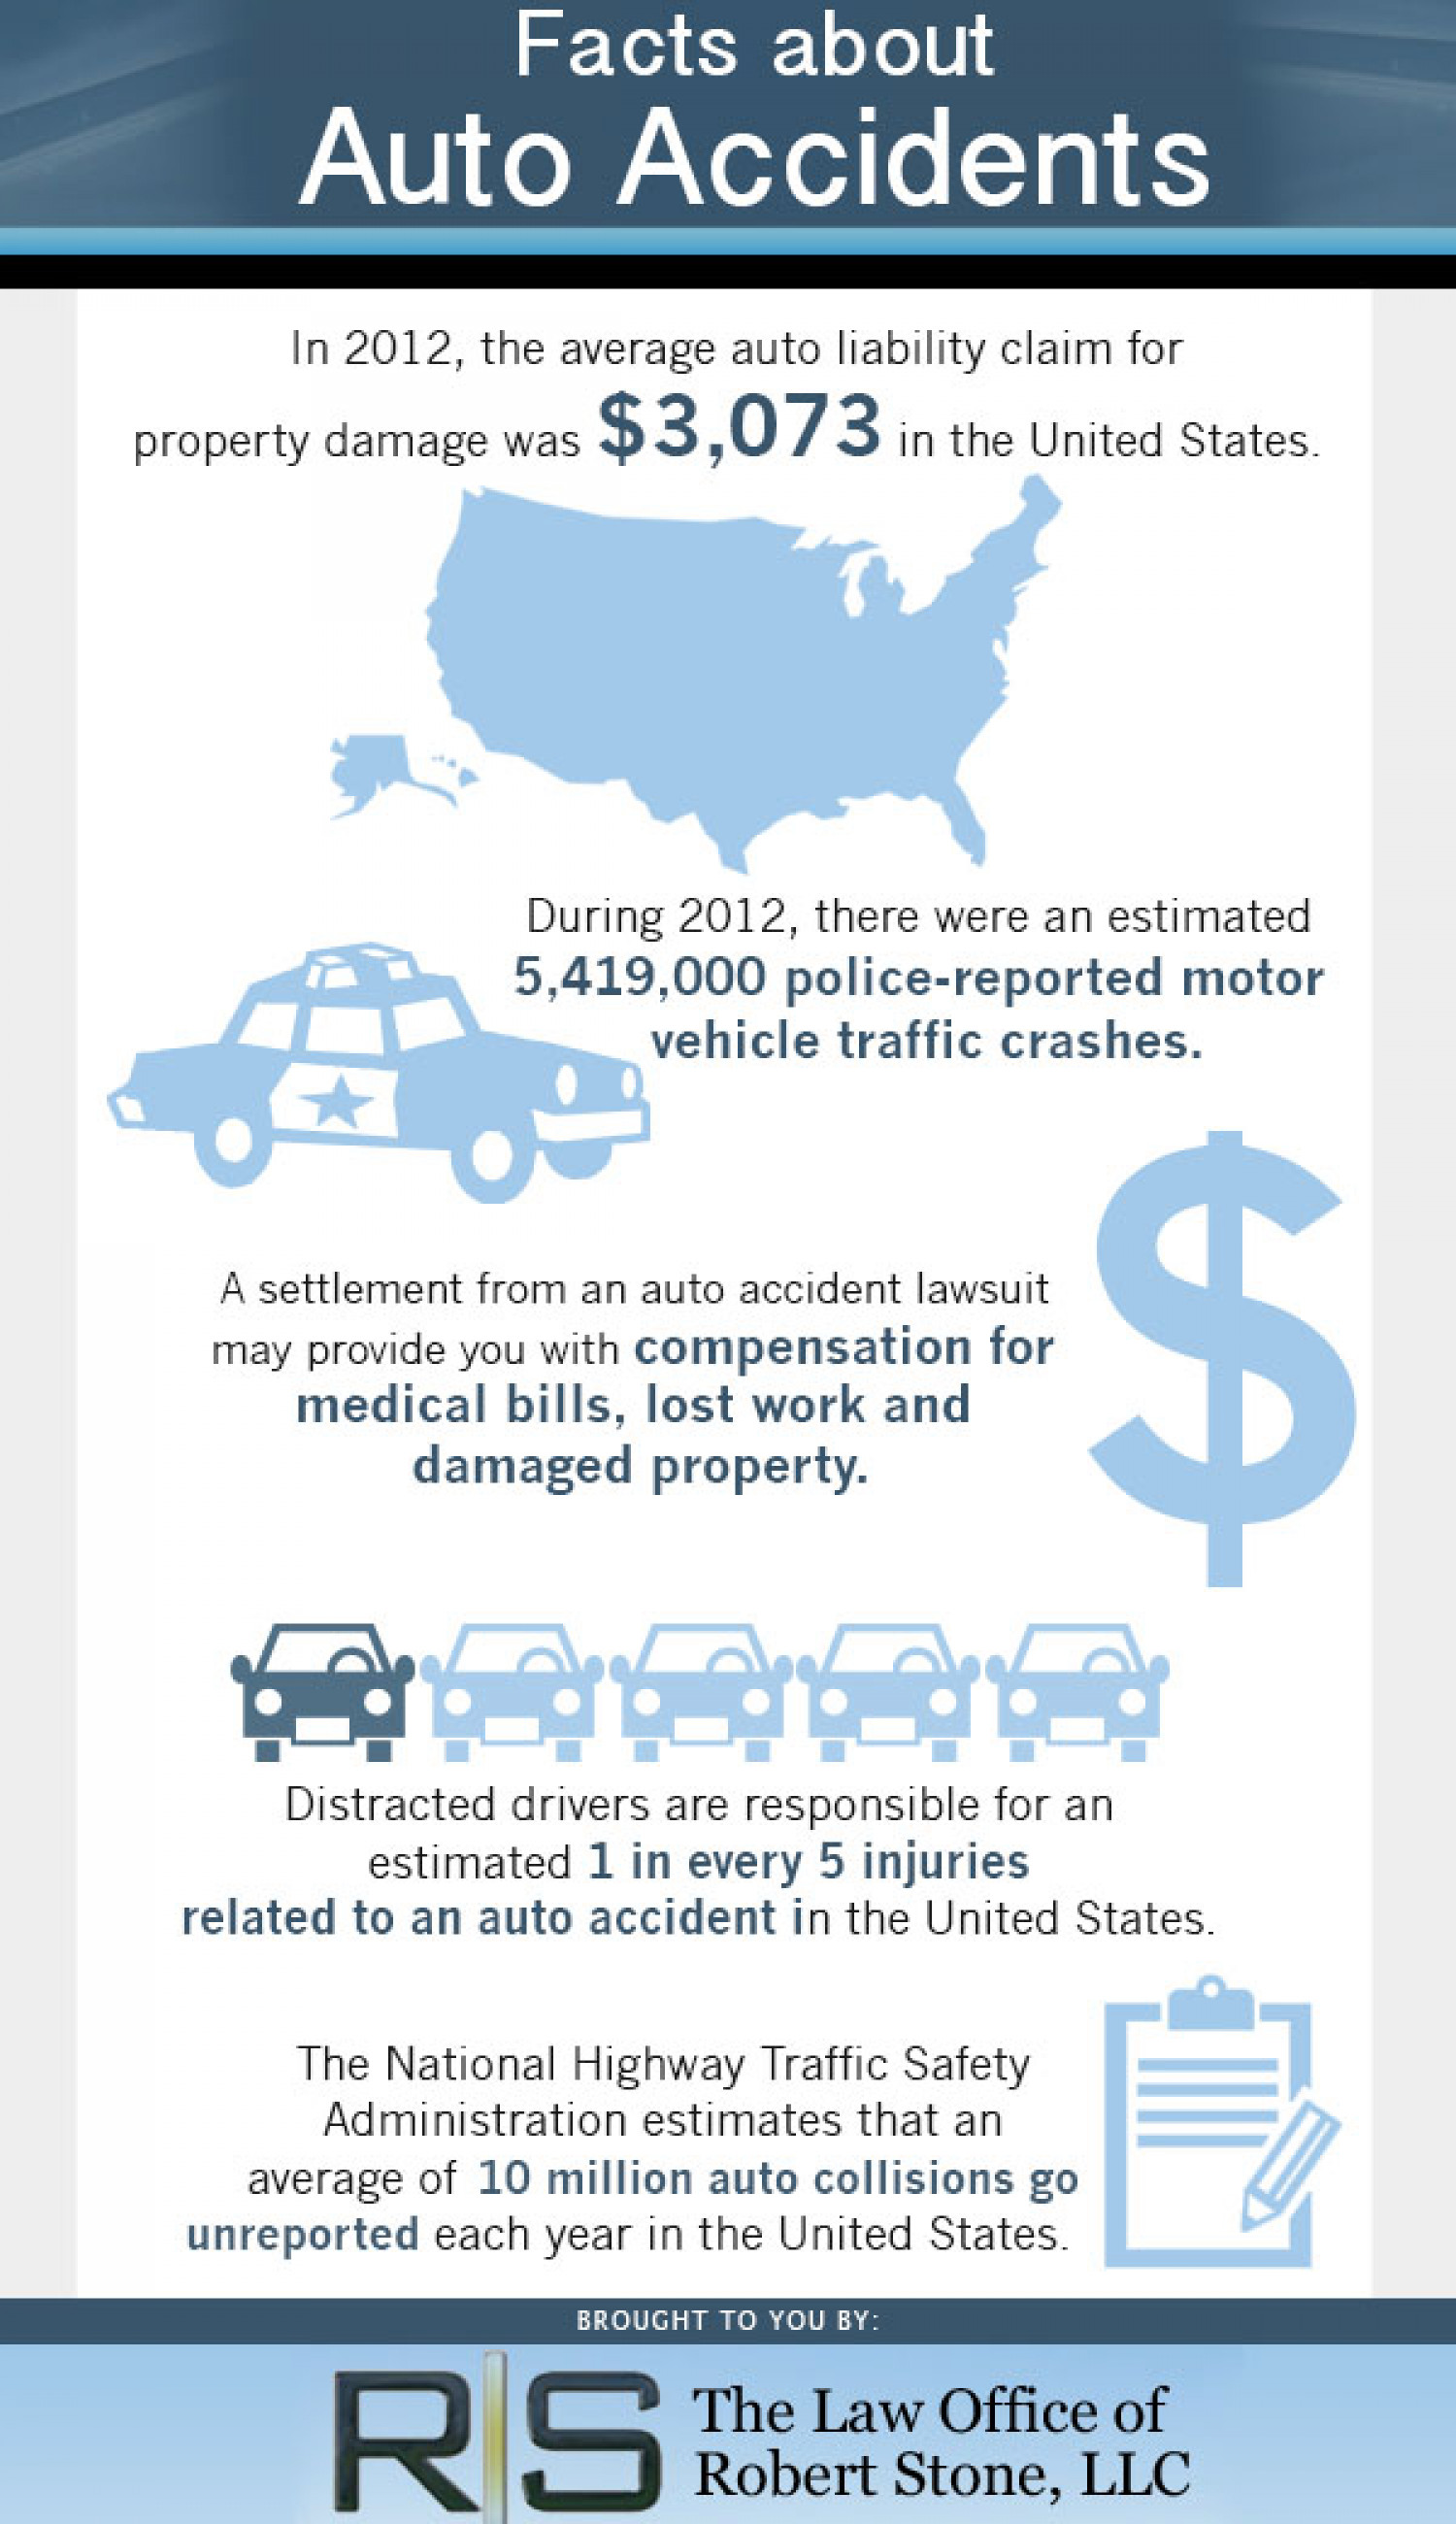 Facts about Auto Accidents Infographic